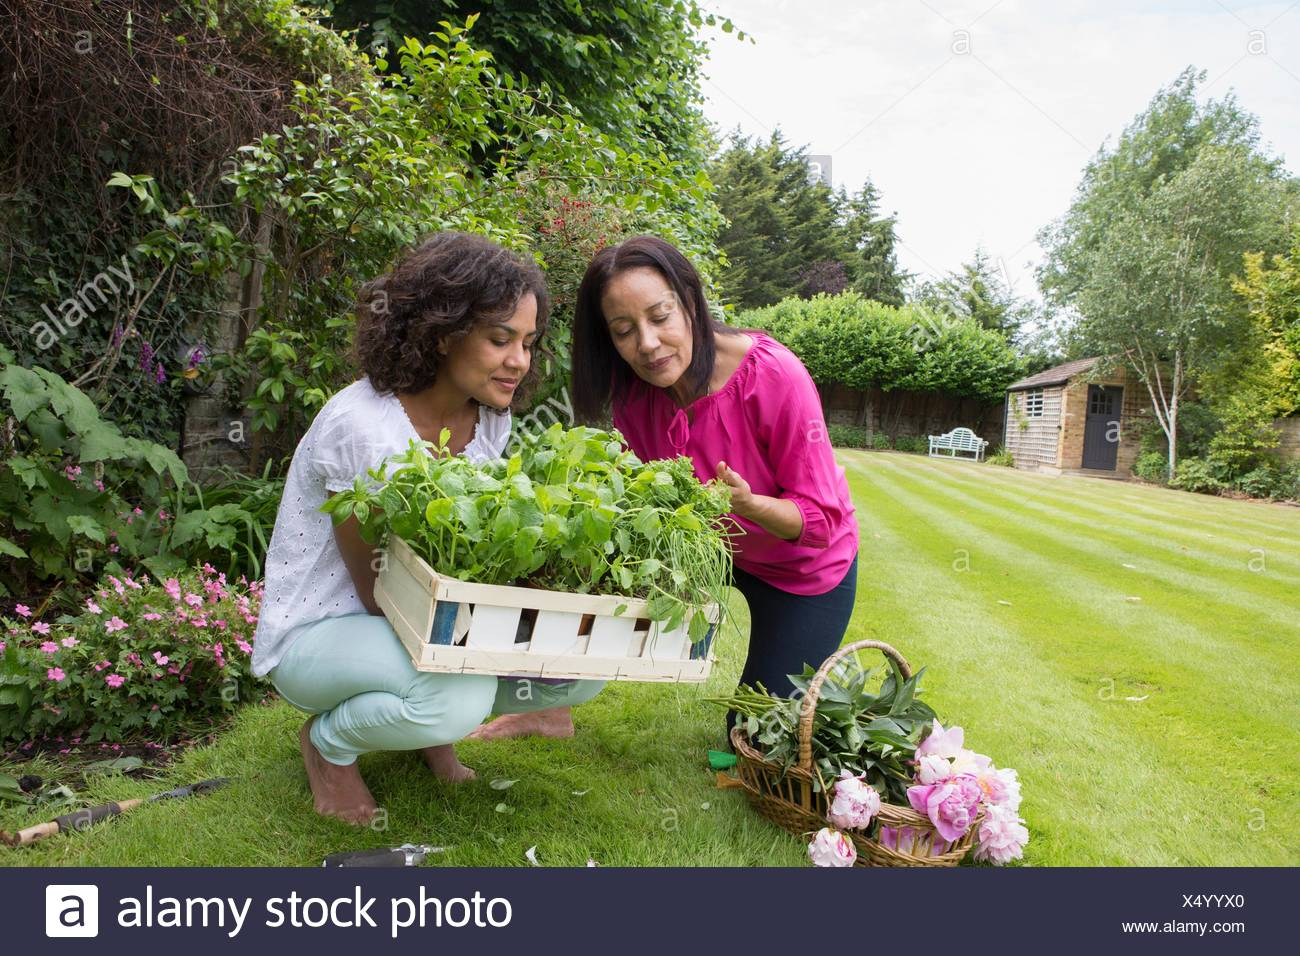 Mother and grown daughter, picking herbs in garden - Stock Image